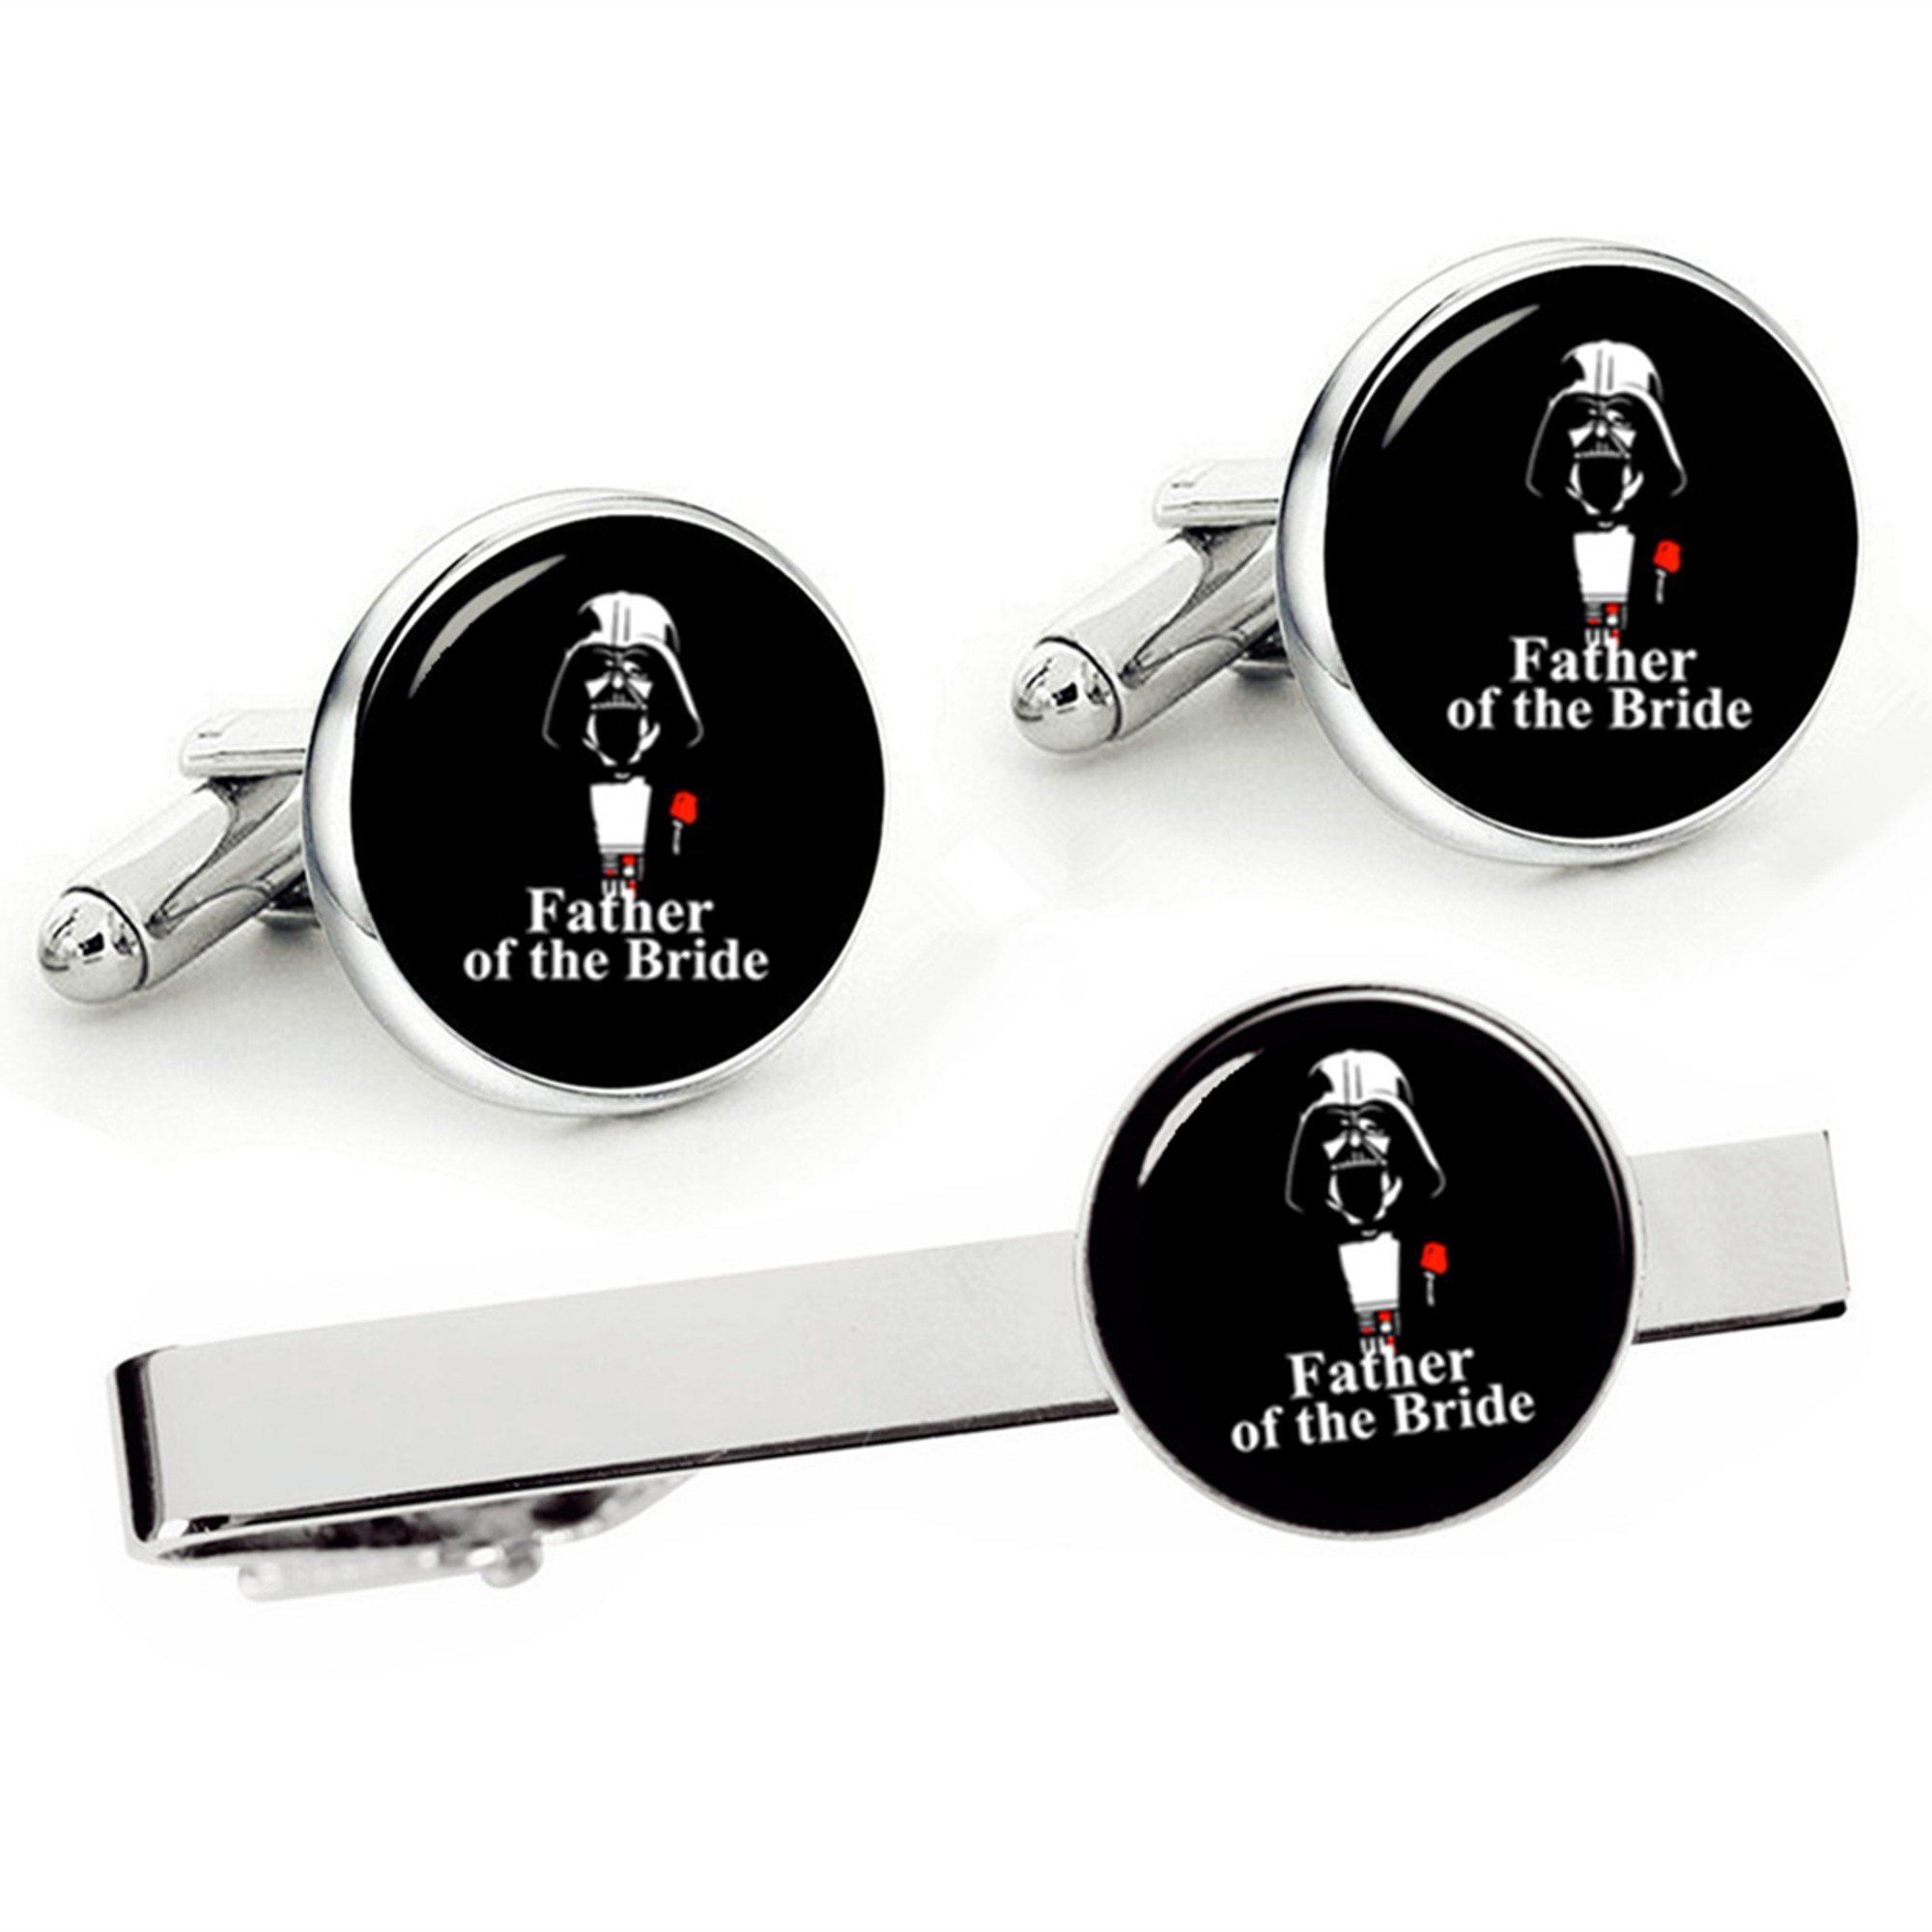 Kooer Father of The Bride Cufflinks Tie Clip Set for Star Style Custom Personalized Wedding Jewelry Gift (Father of The Bride Set)